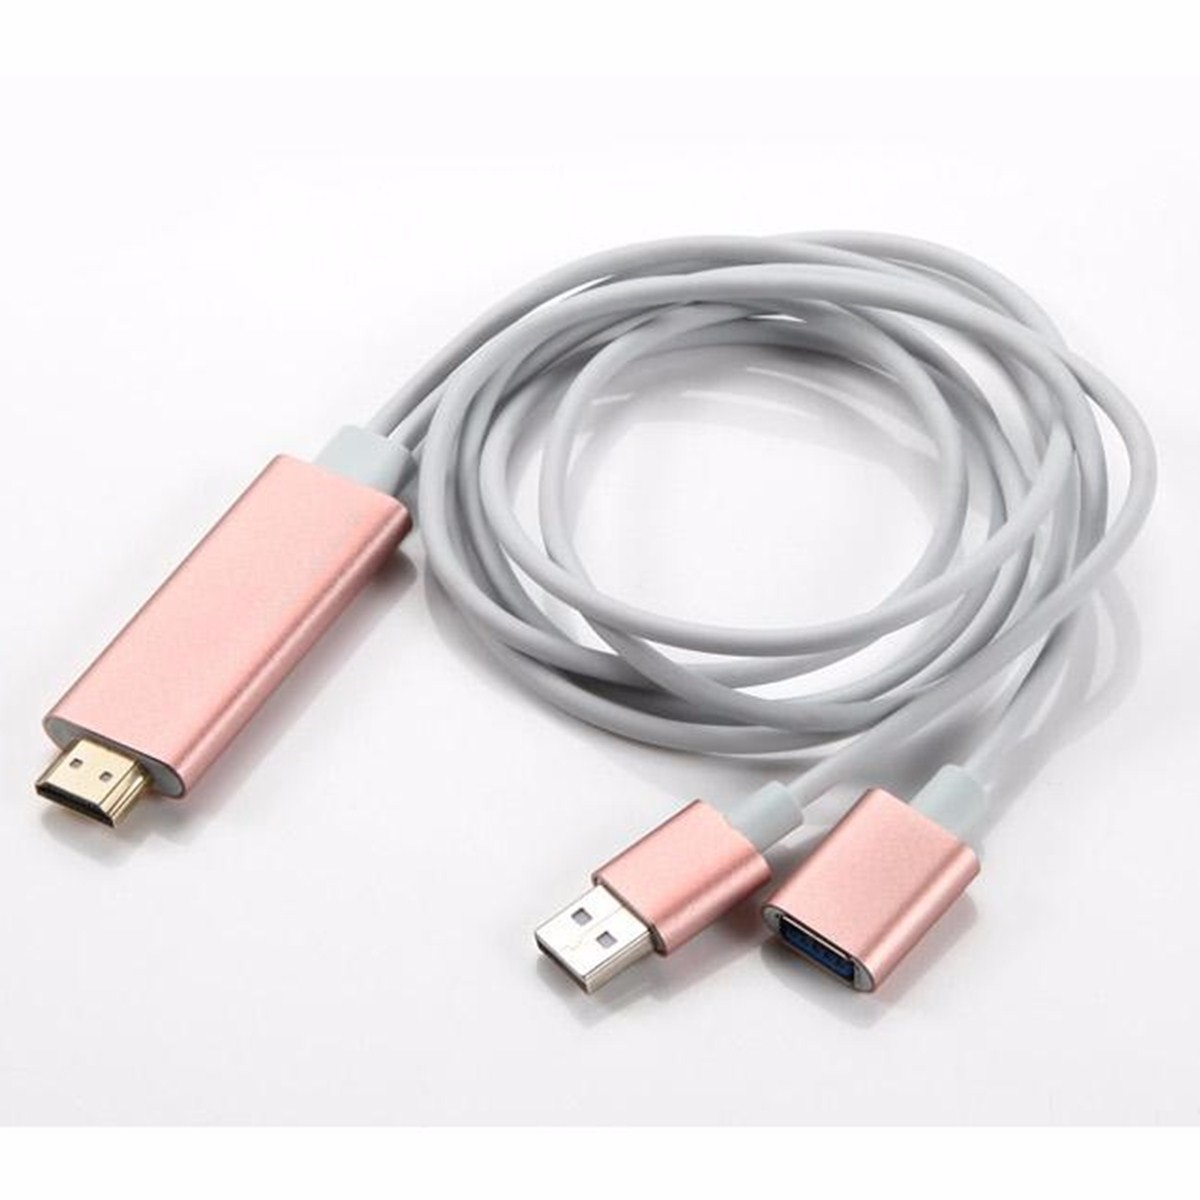 6.6ft/2M 3in1 1080P HD Wireless HDTV DLNA Air play Display Dongle Cable Adapter For IOS Smartphone Support H DMI Output Projector